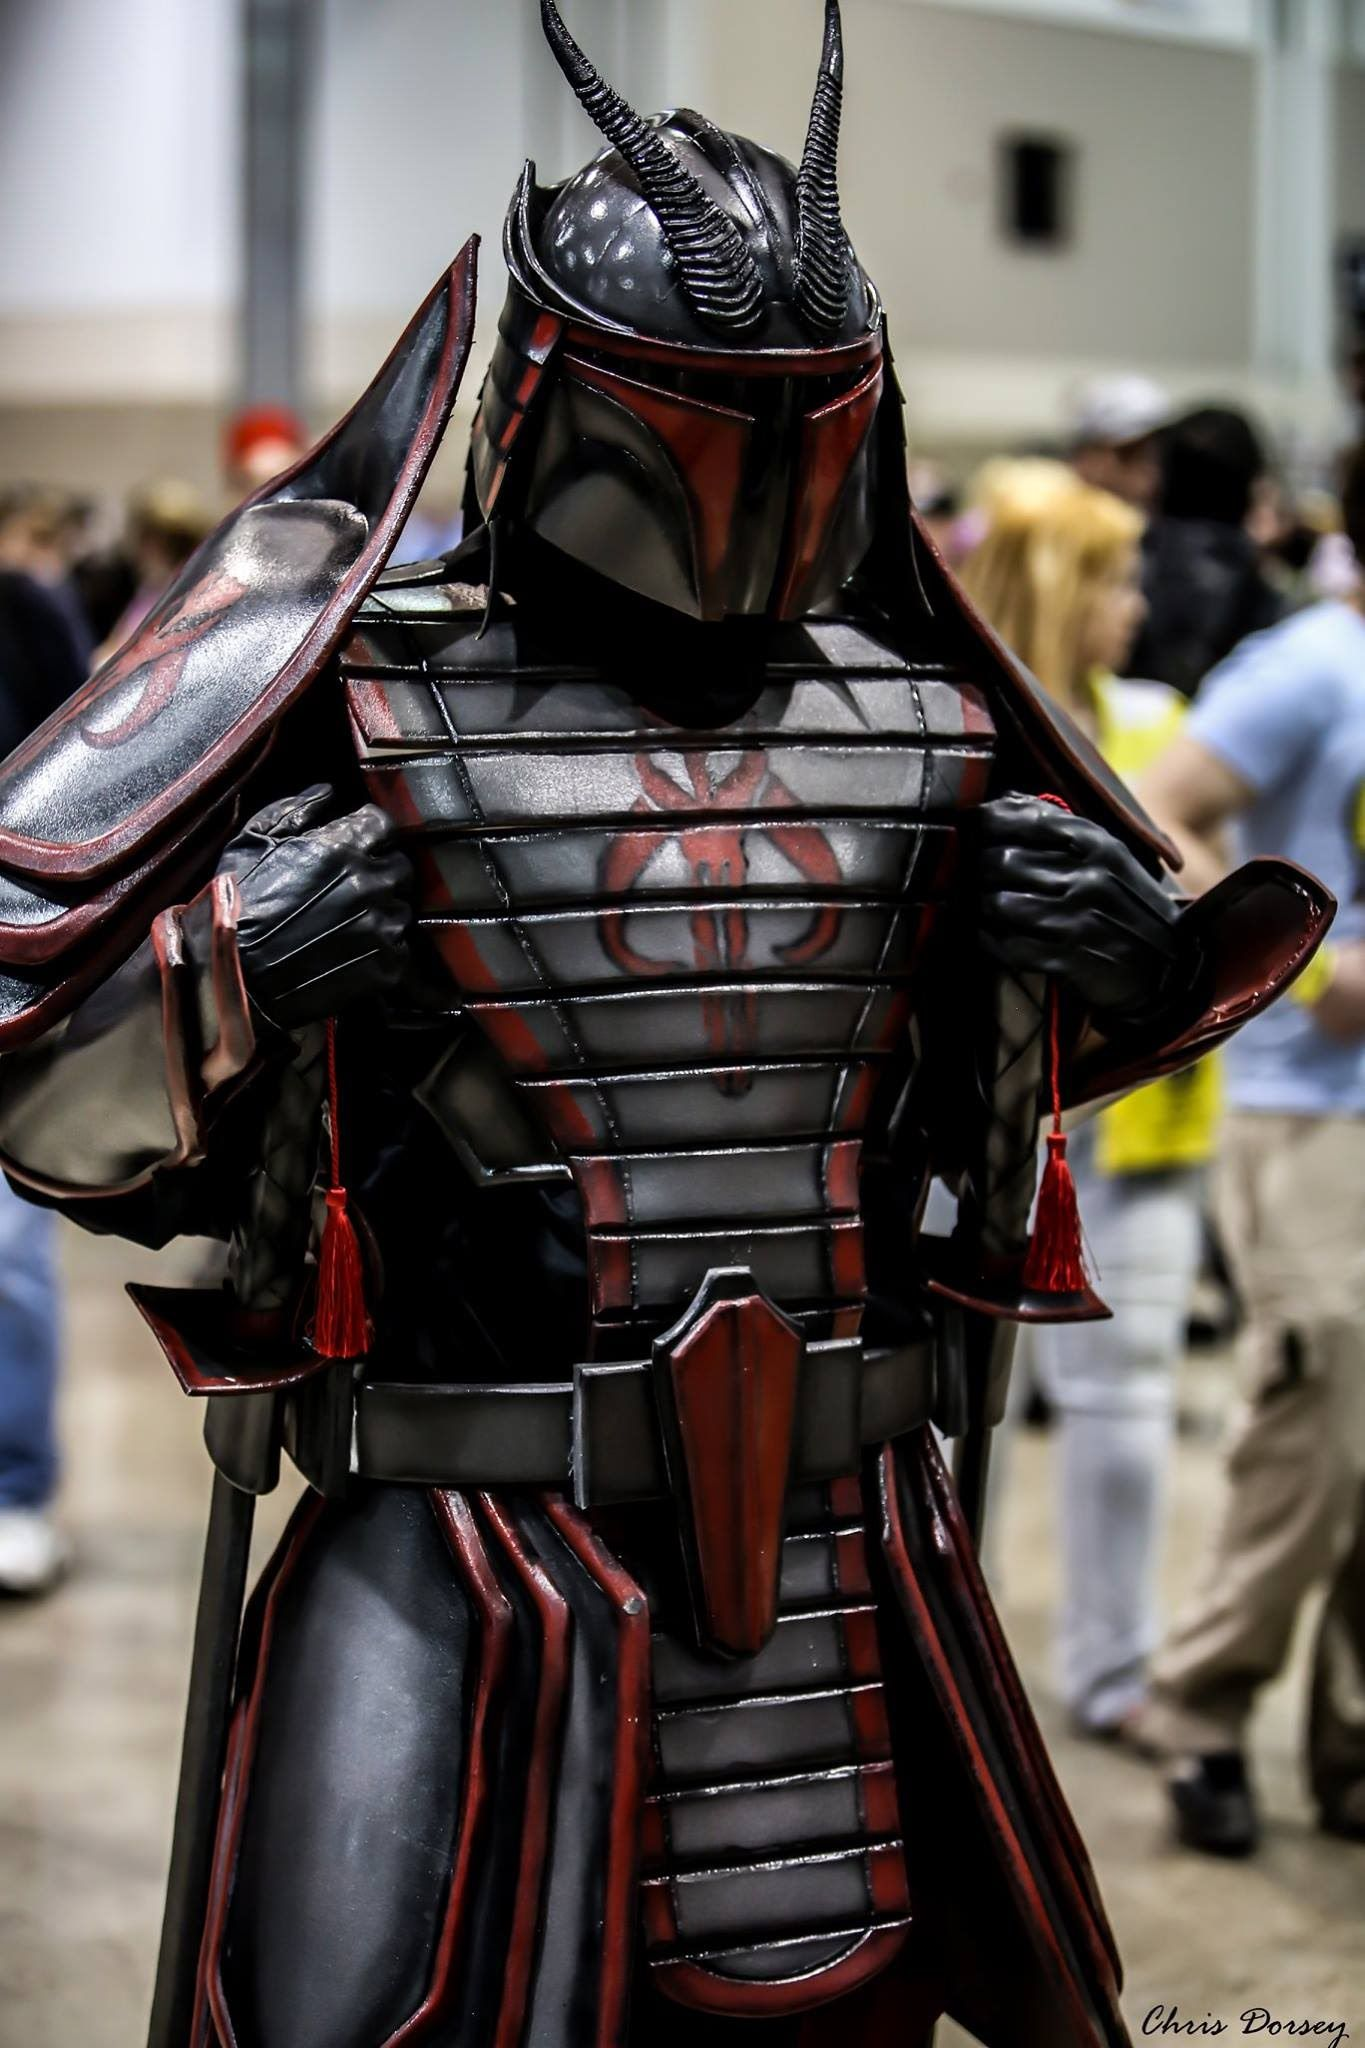 Foam Armor Strapping & Foam Armor Strapping | Cosplay tutorials | Pinterest | Foam armor ...